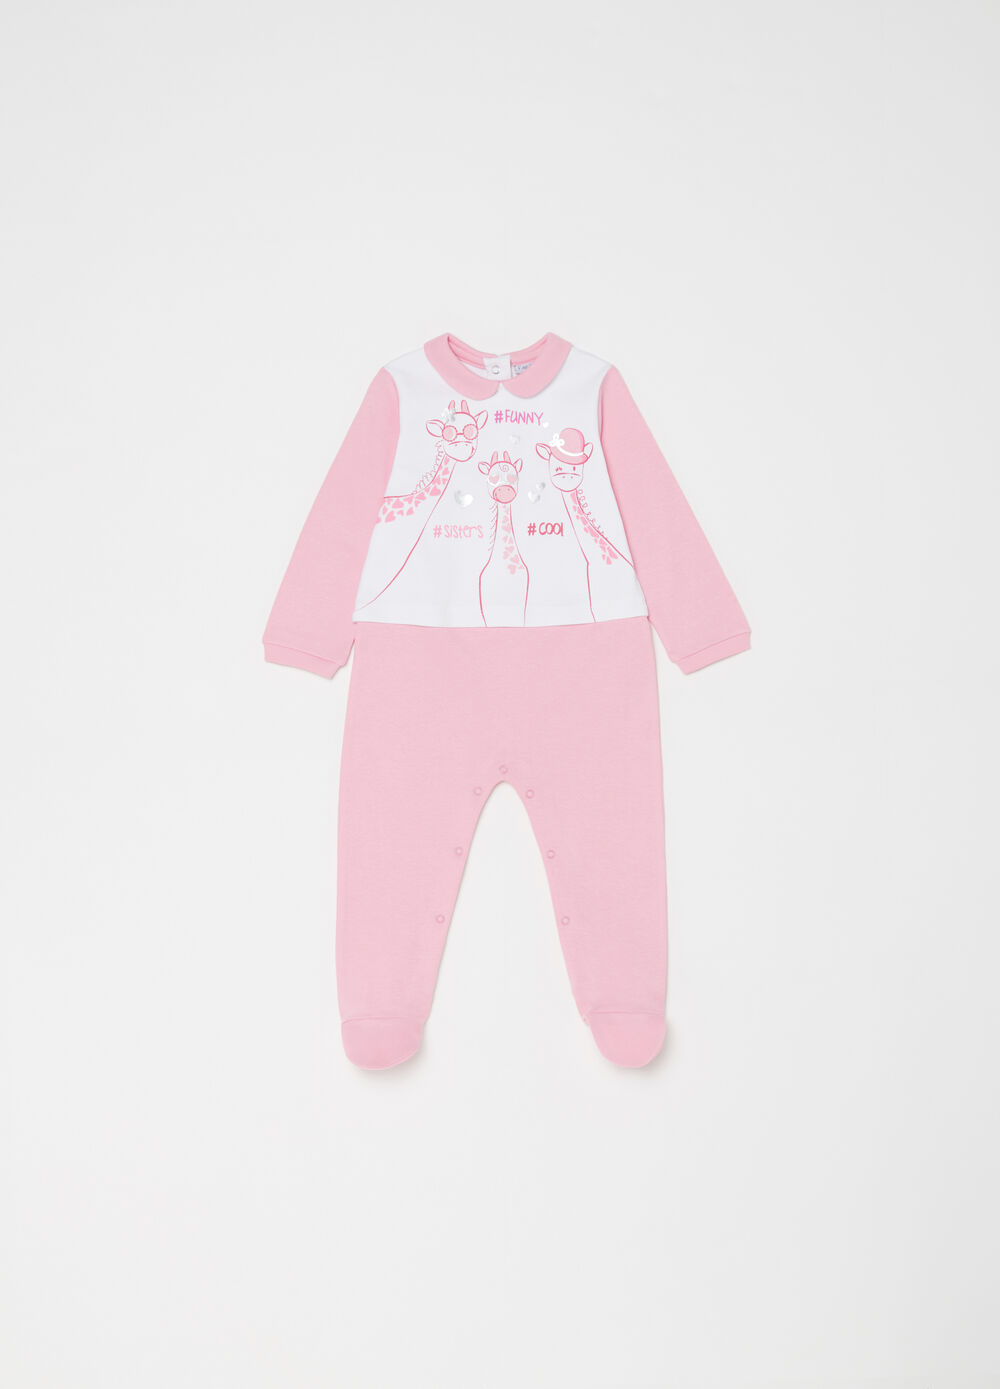 Two-tone sleepsuit in cotton with giraffes